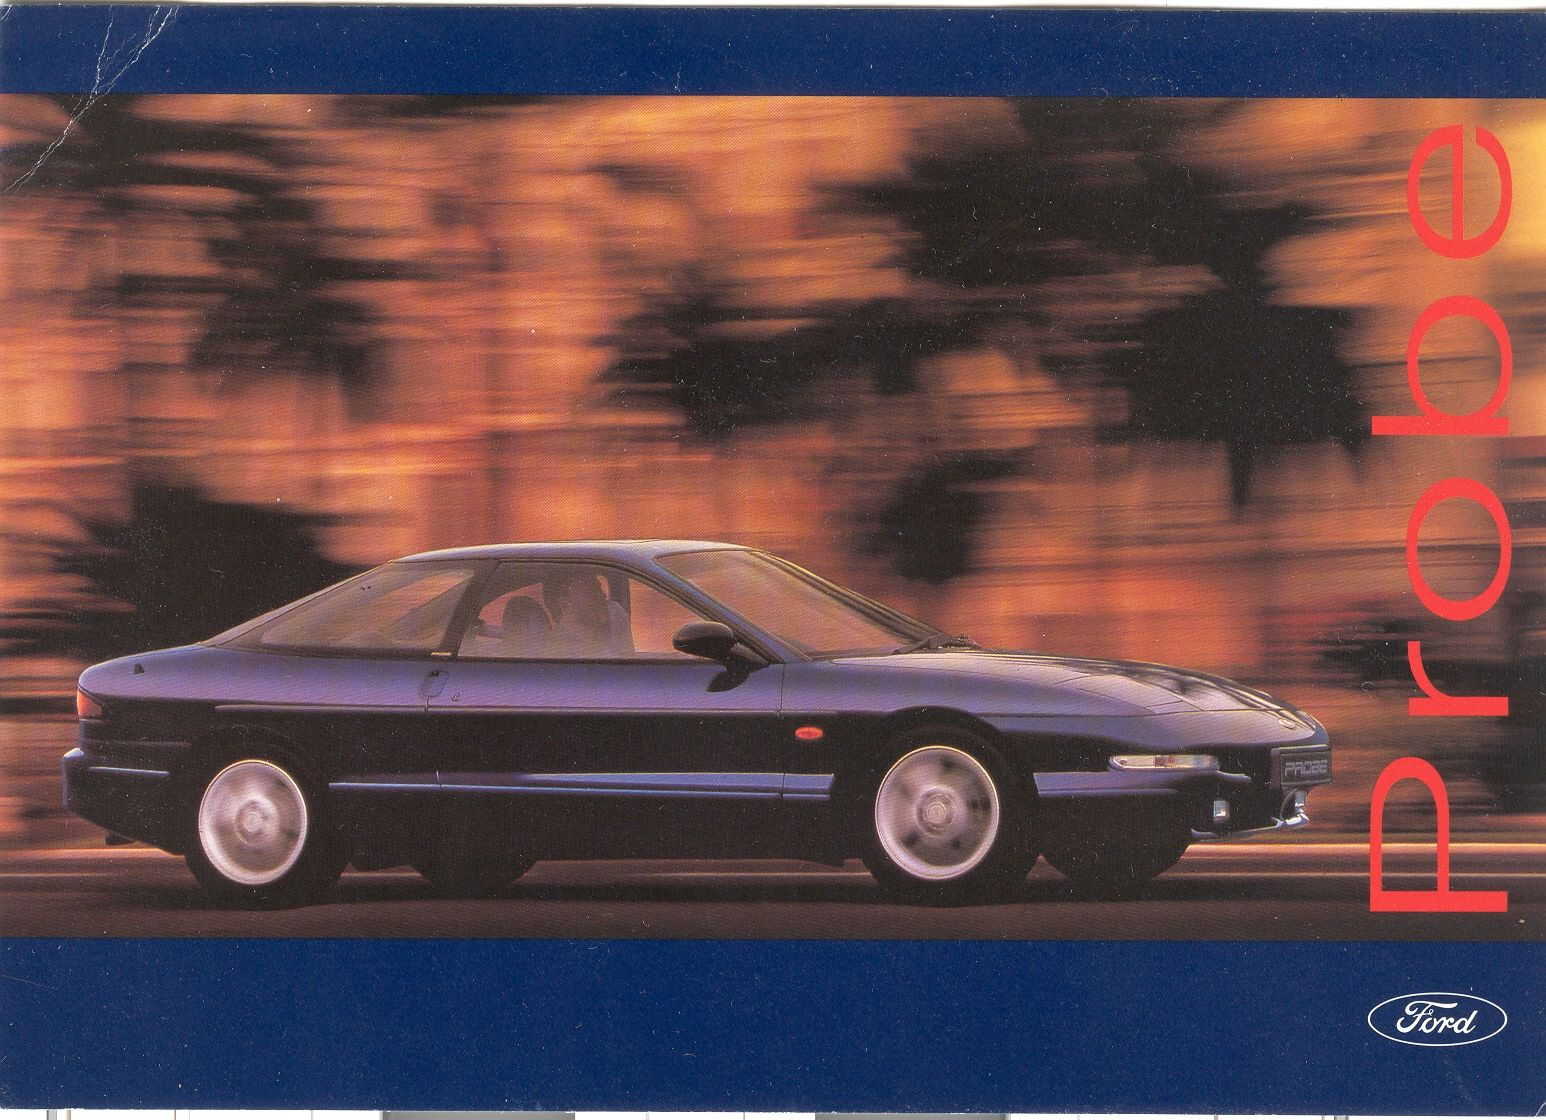 From The Launch Of The Ford Probe Ford Probe Automotive Art Ford